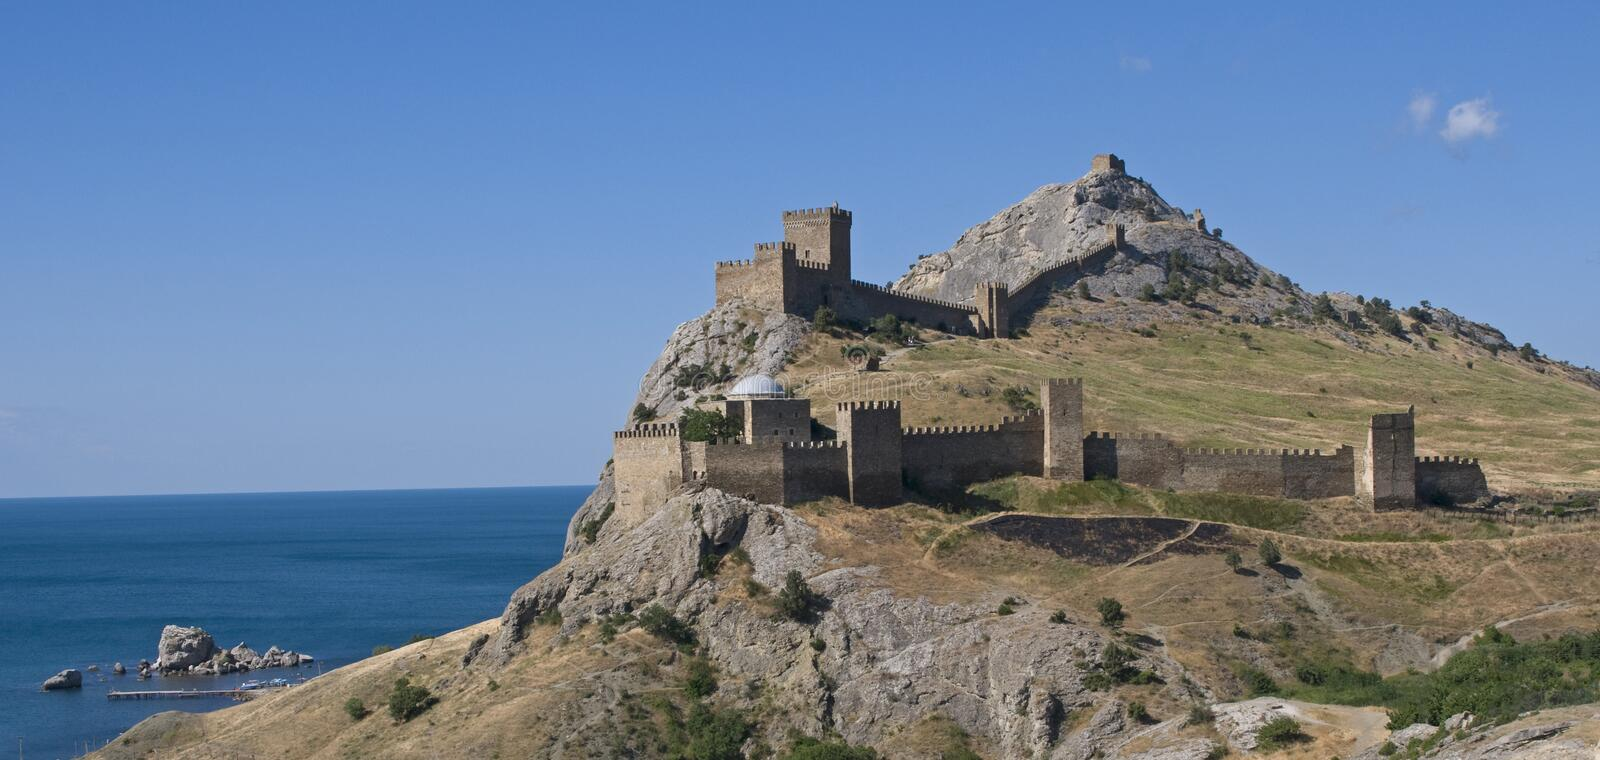 Genoese Sudak Castle. This is a Genoese Sudak Castle, Crimea. The Genoese fortress is situated on the rock against the blue sky and sea background royalty free stock image